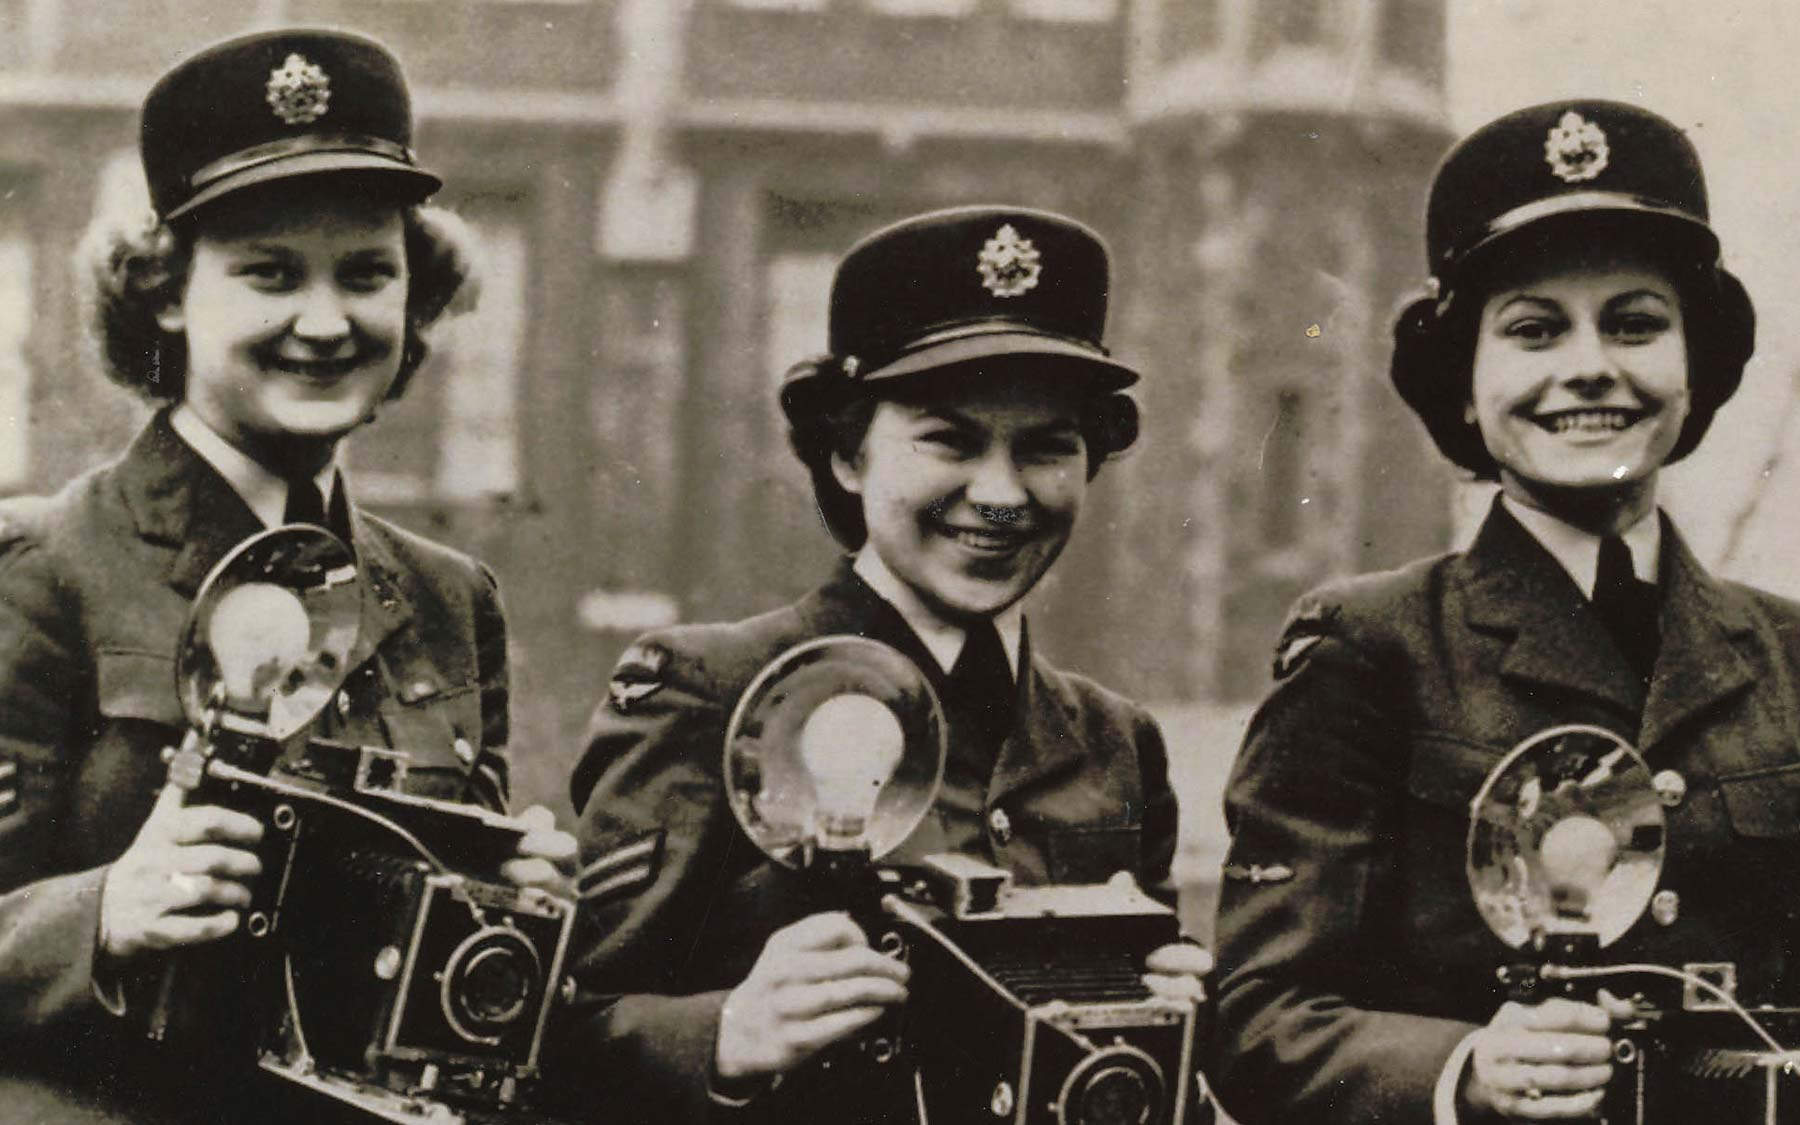 Patricia Collins (née Holden) was one of three press photographers working in the Public Relations Department of Lincoln's Inn Fields, London, England, 1944.